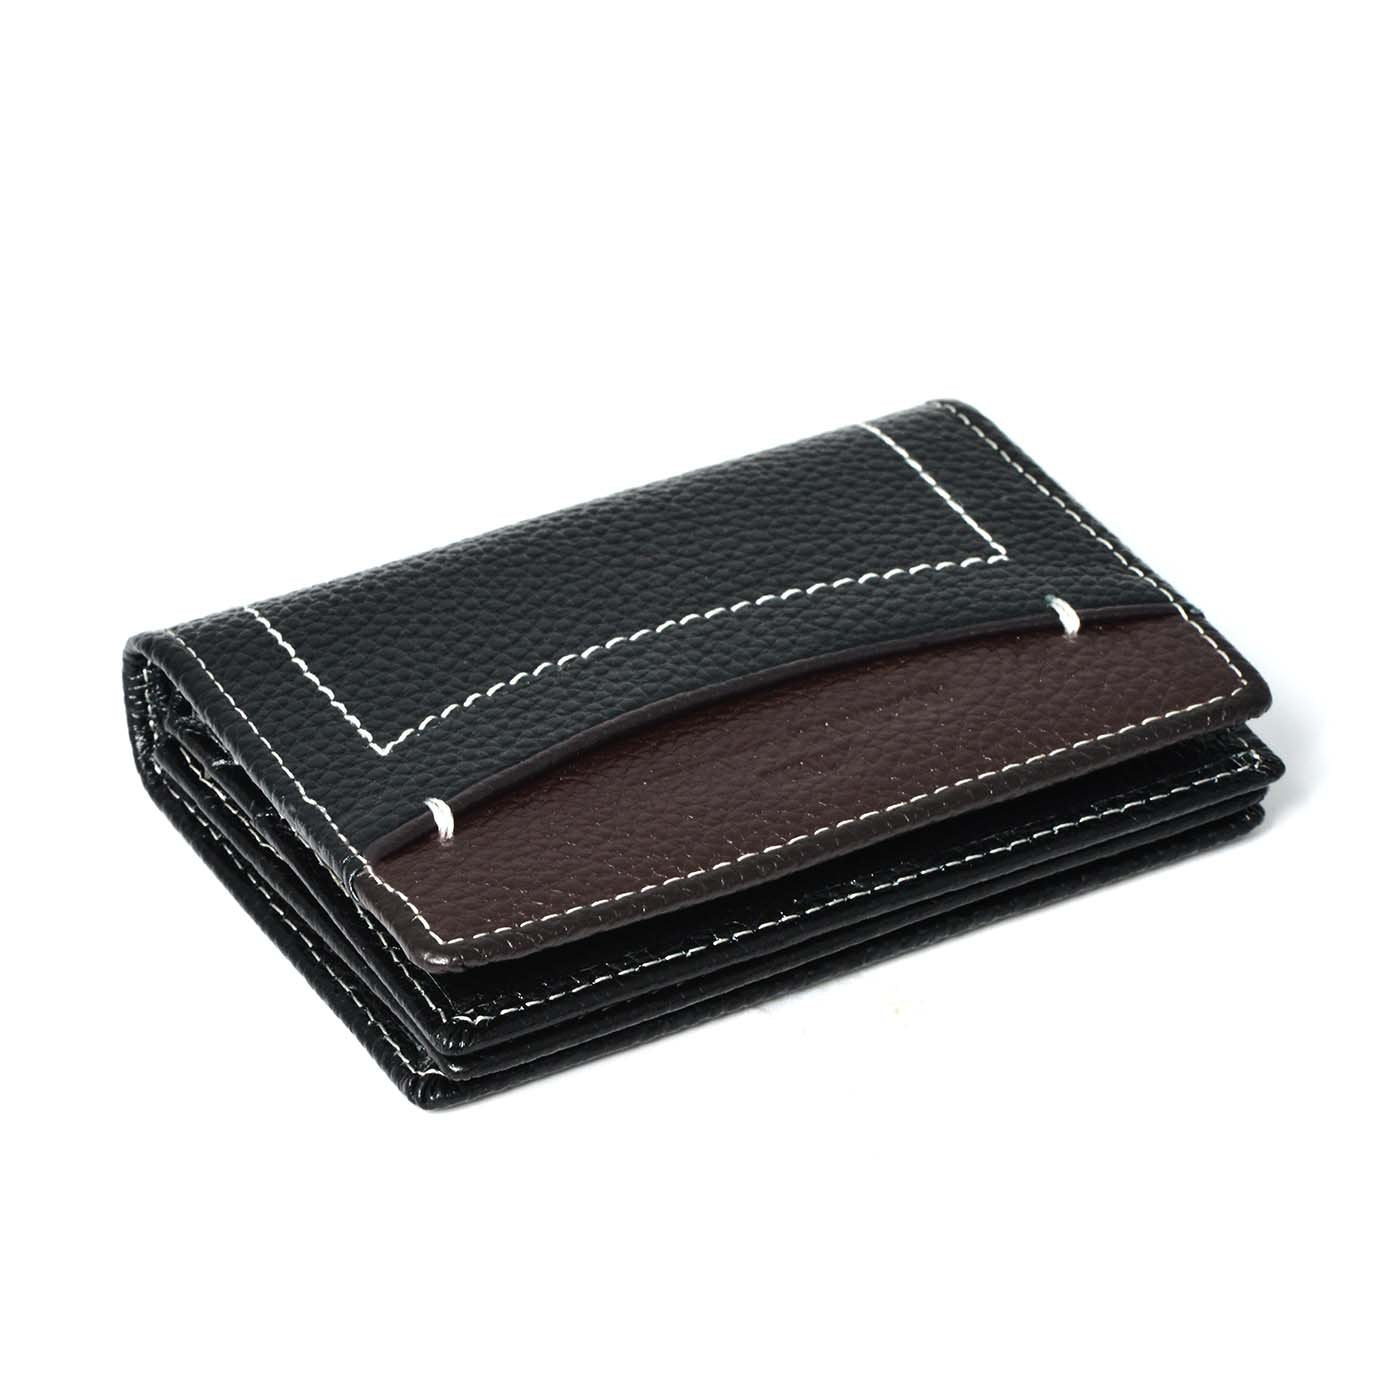 RENATO LANDINI Card Holder/ Treasure